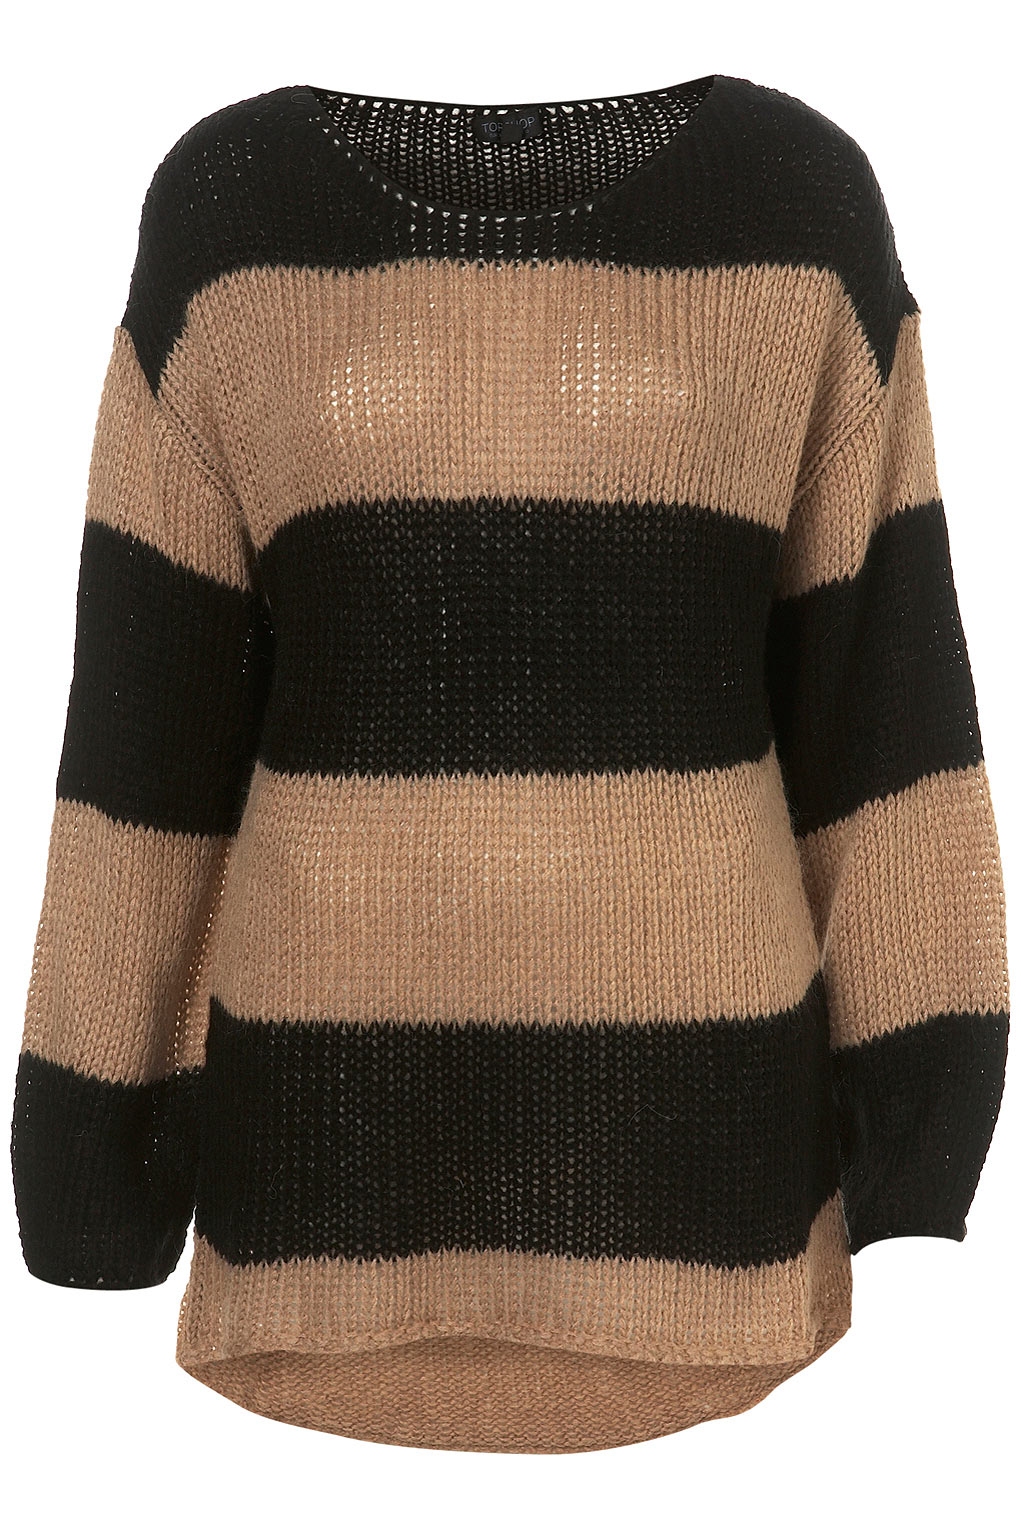 Knitted Stripe Cocoon Jumper from TopShop - £40